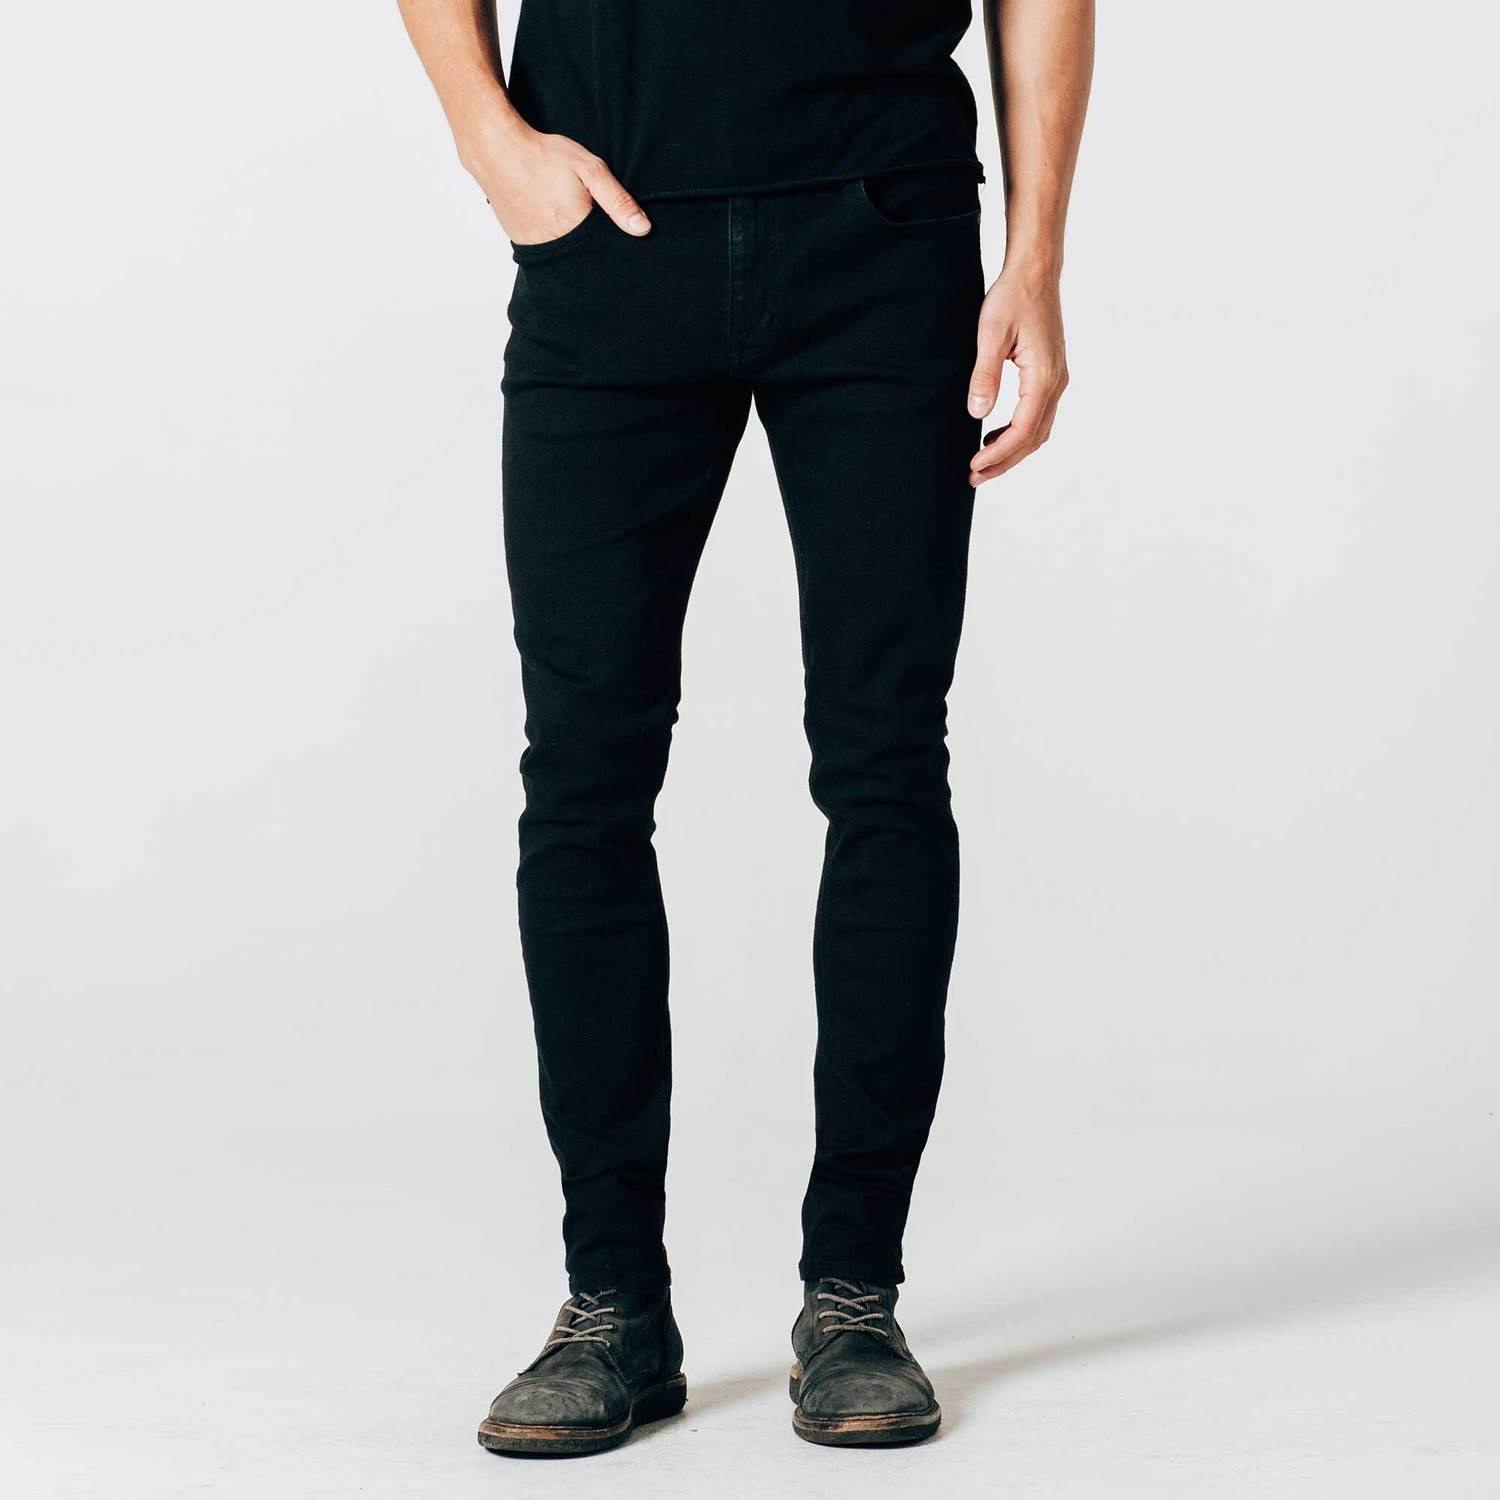 Men's Buckle Black Jeans. Buckle Black jeans for men are made with premium fabrics and finishes at understandable retails. The Buckle Black men's jean design team has created compelling and distinct product that resonates and is inspired by Buckle guests.